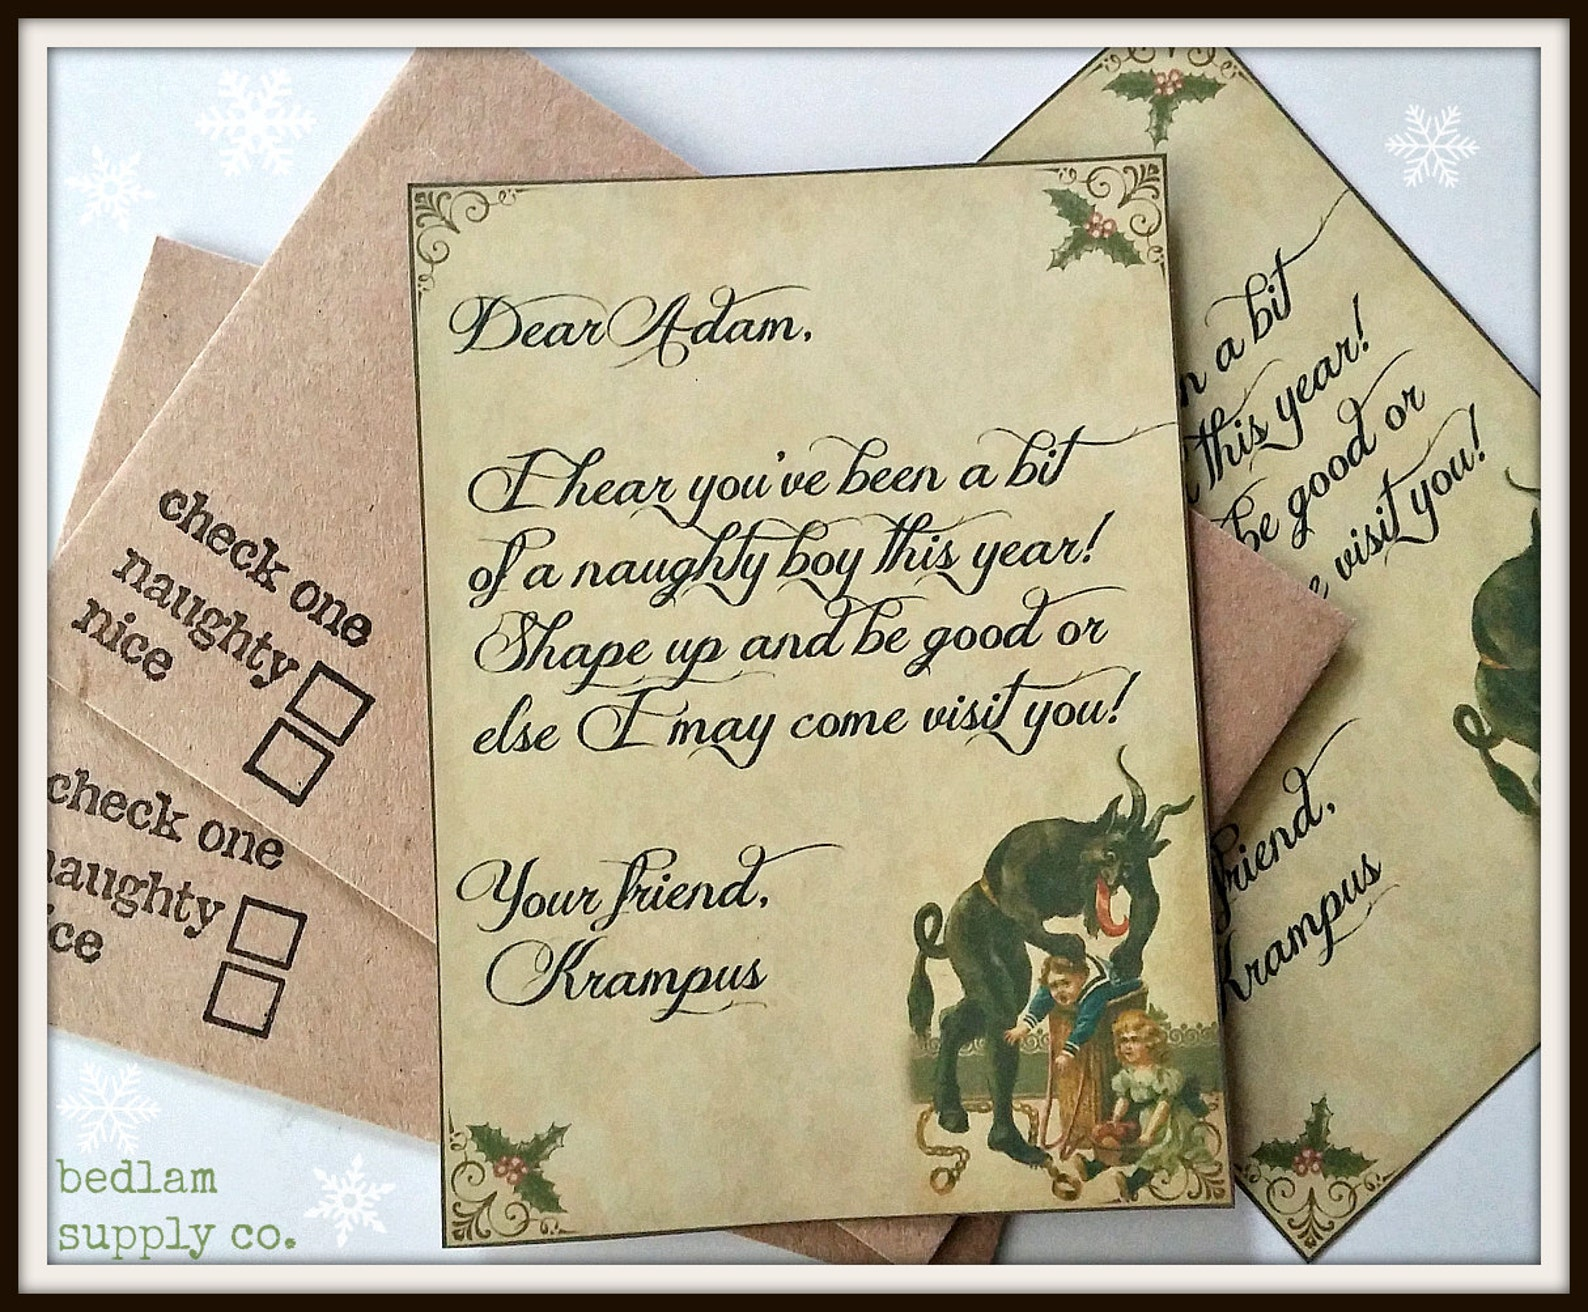 Personalized Krampus Letter for Naughty Children